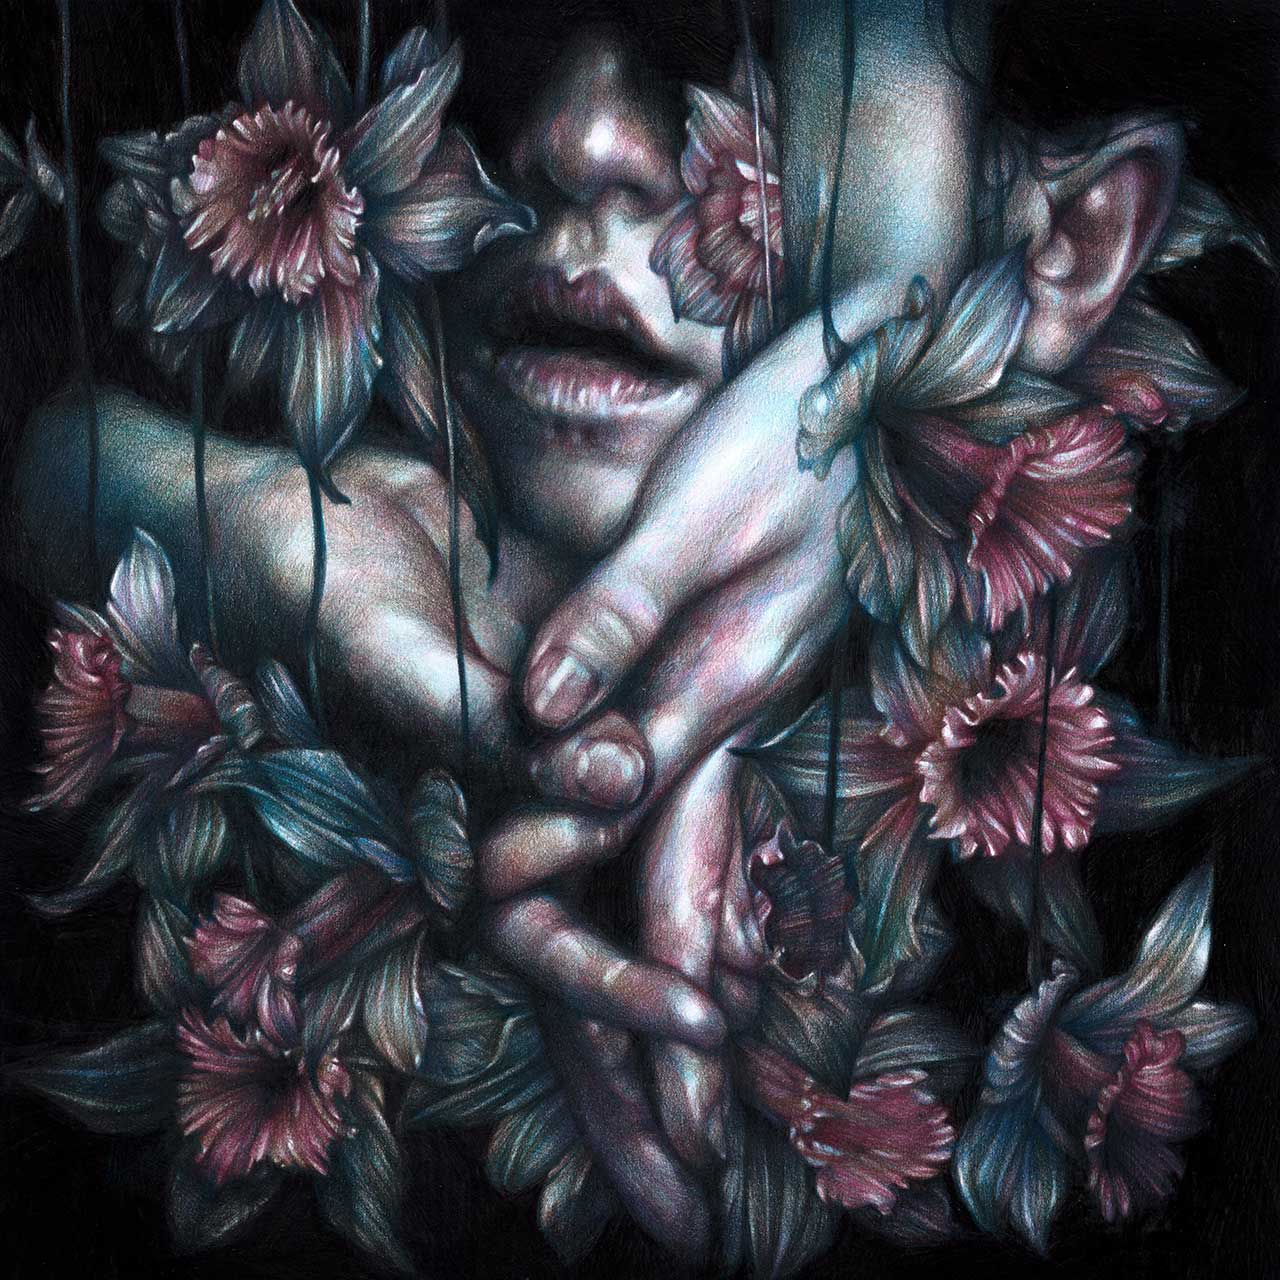 Marco Mazzoni, The Rescue, 2015. Colored pencils on paper © Marco Mazzoni.